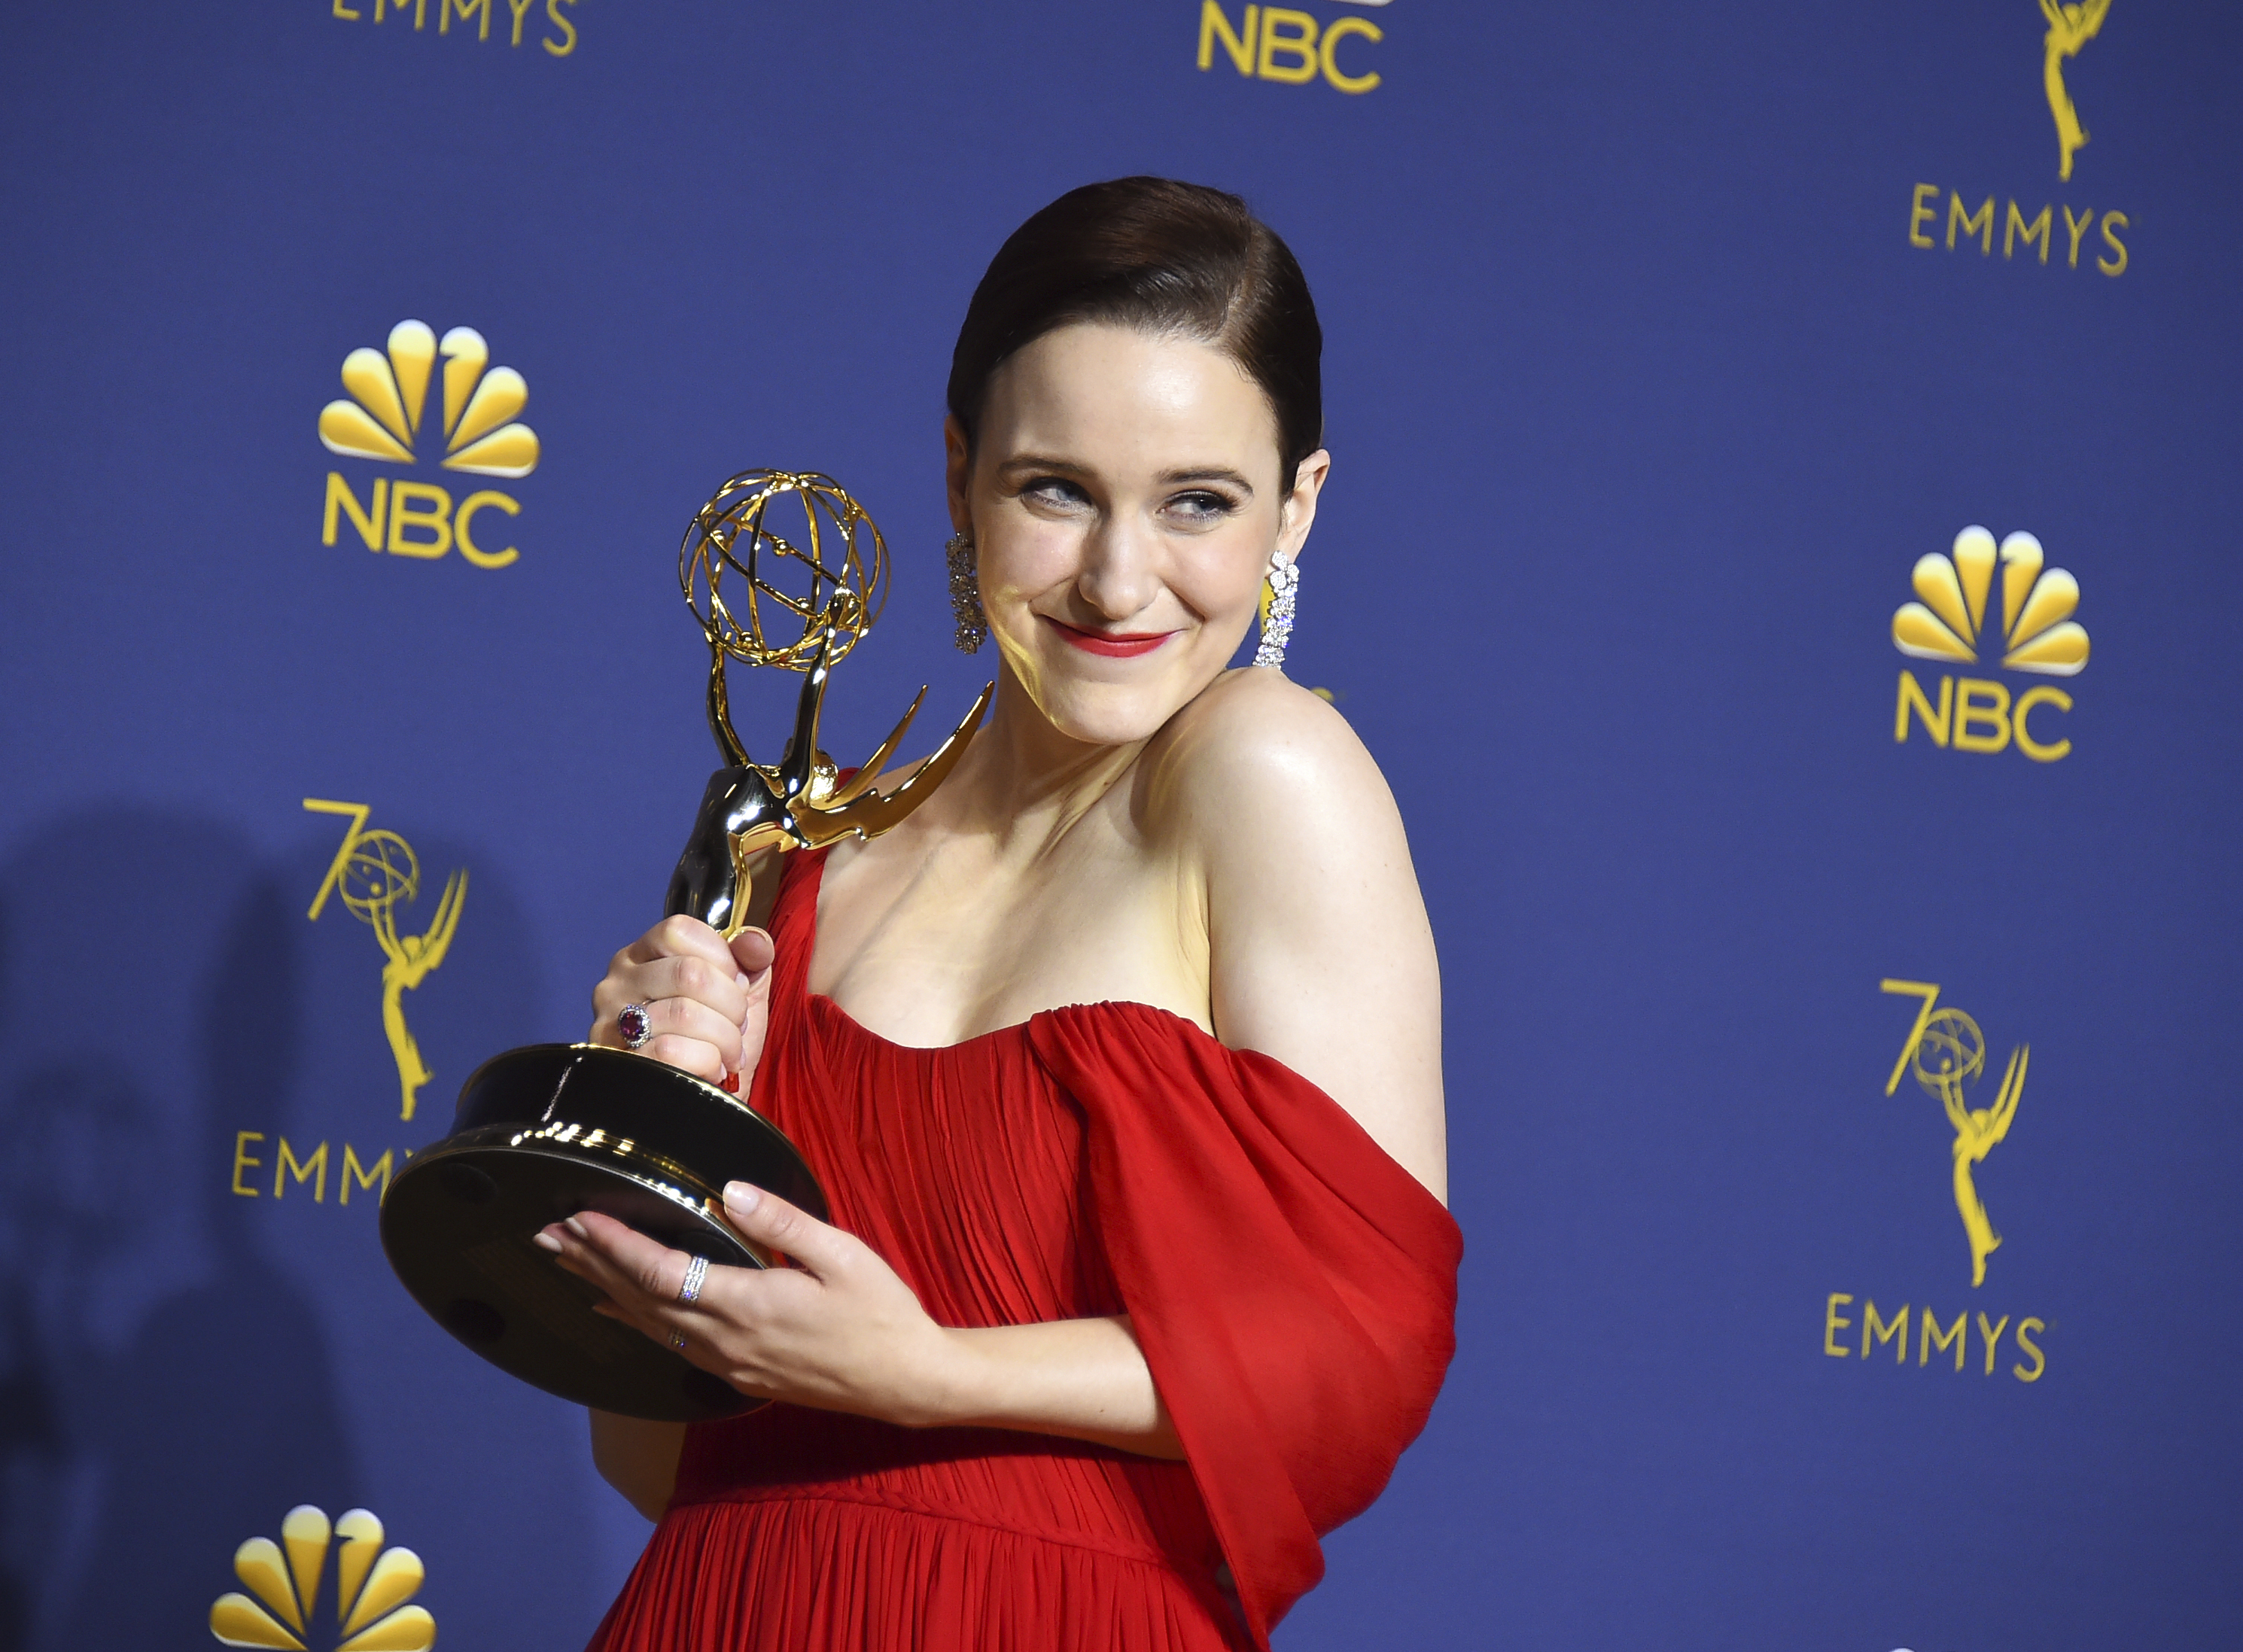 Outstanding Lead Actress in a Comedy Series 2018  - Rachel Brosnahan as Miriam Midge Maisel in The Marvelous Mrs. Maisel